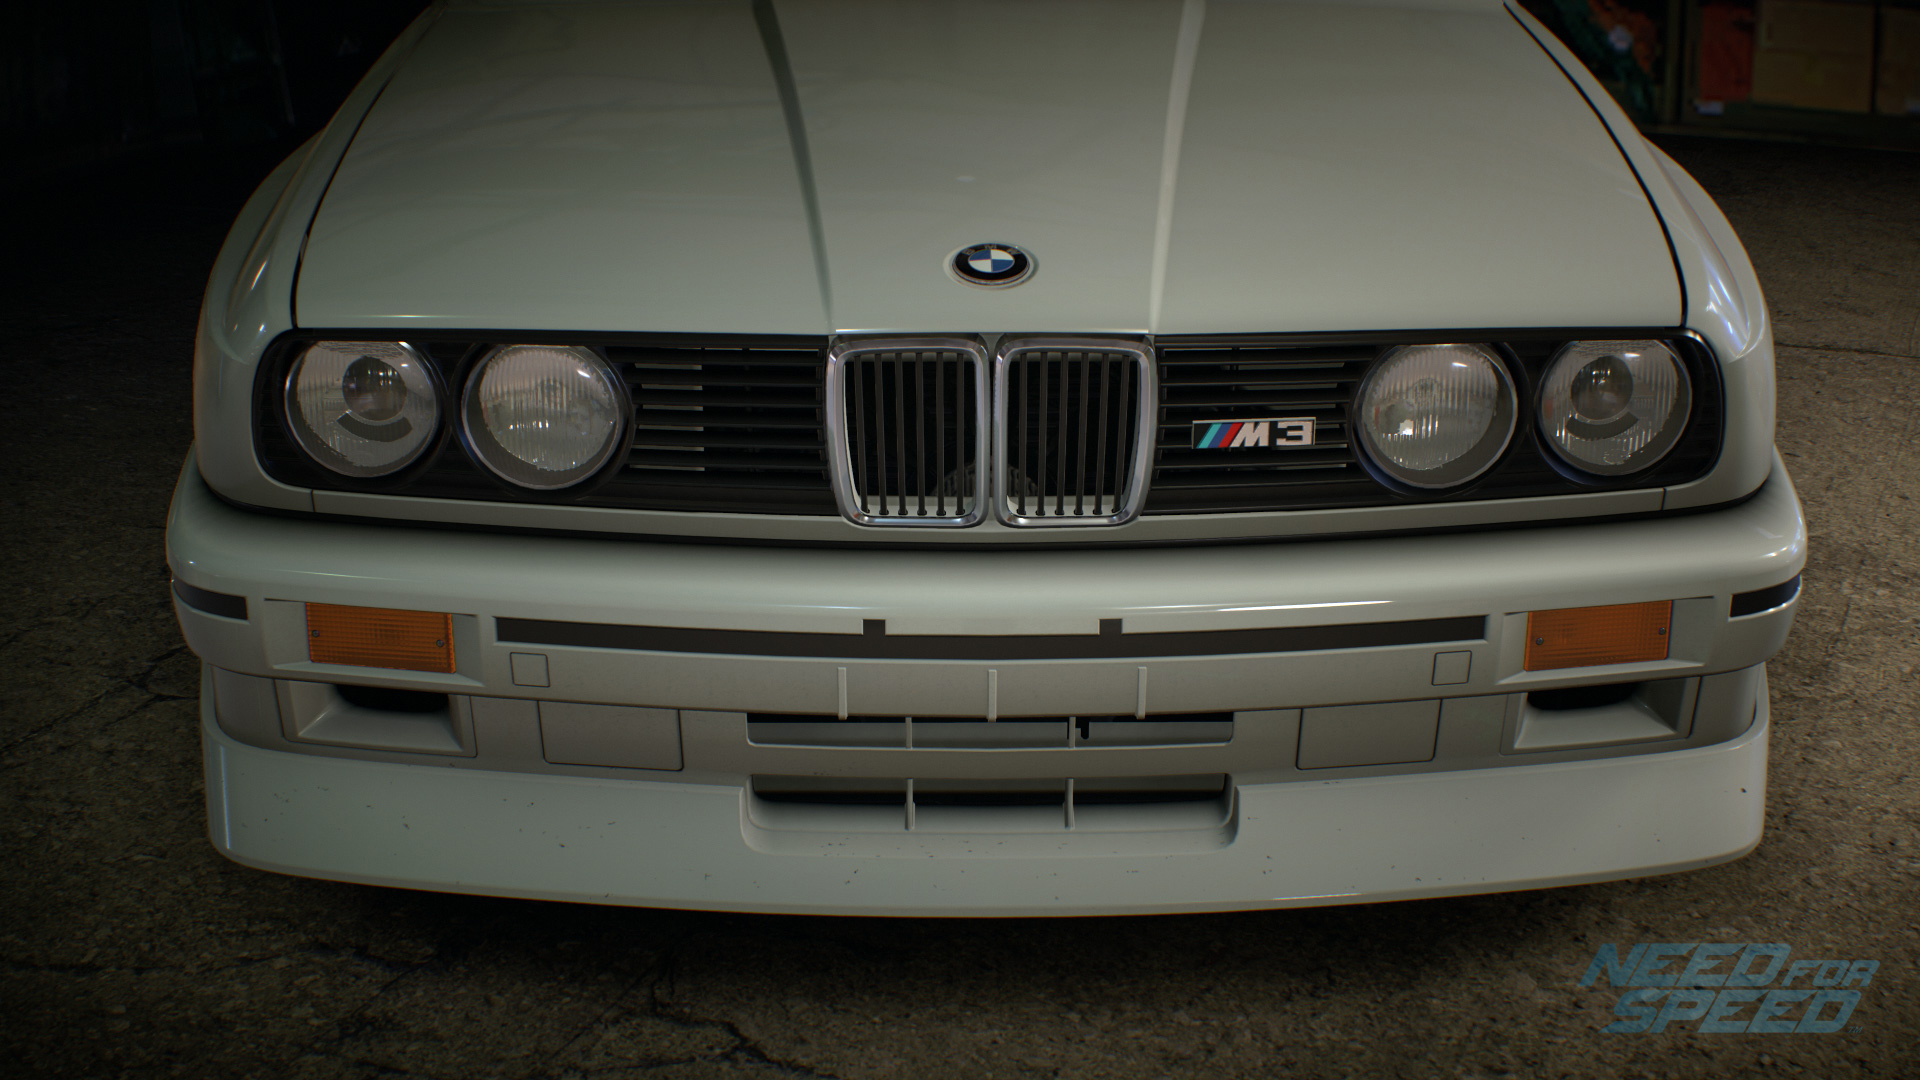 BMW_M3_Evo_01 - STOCK - WMARK